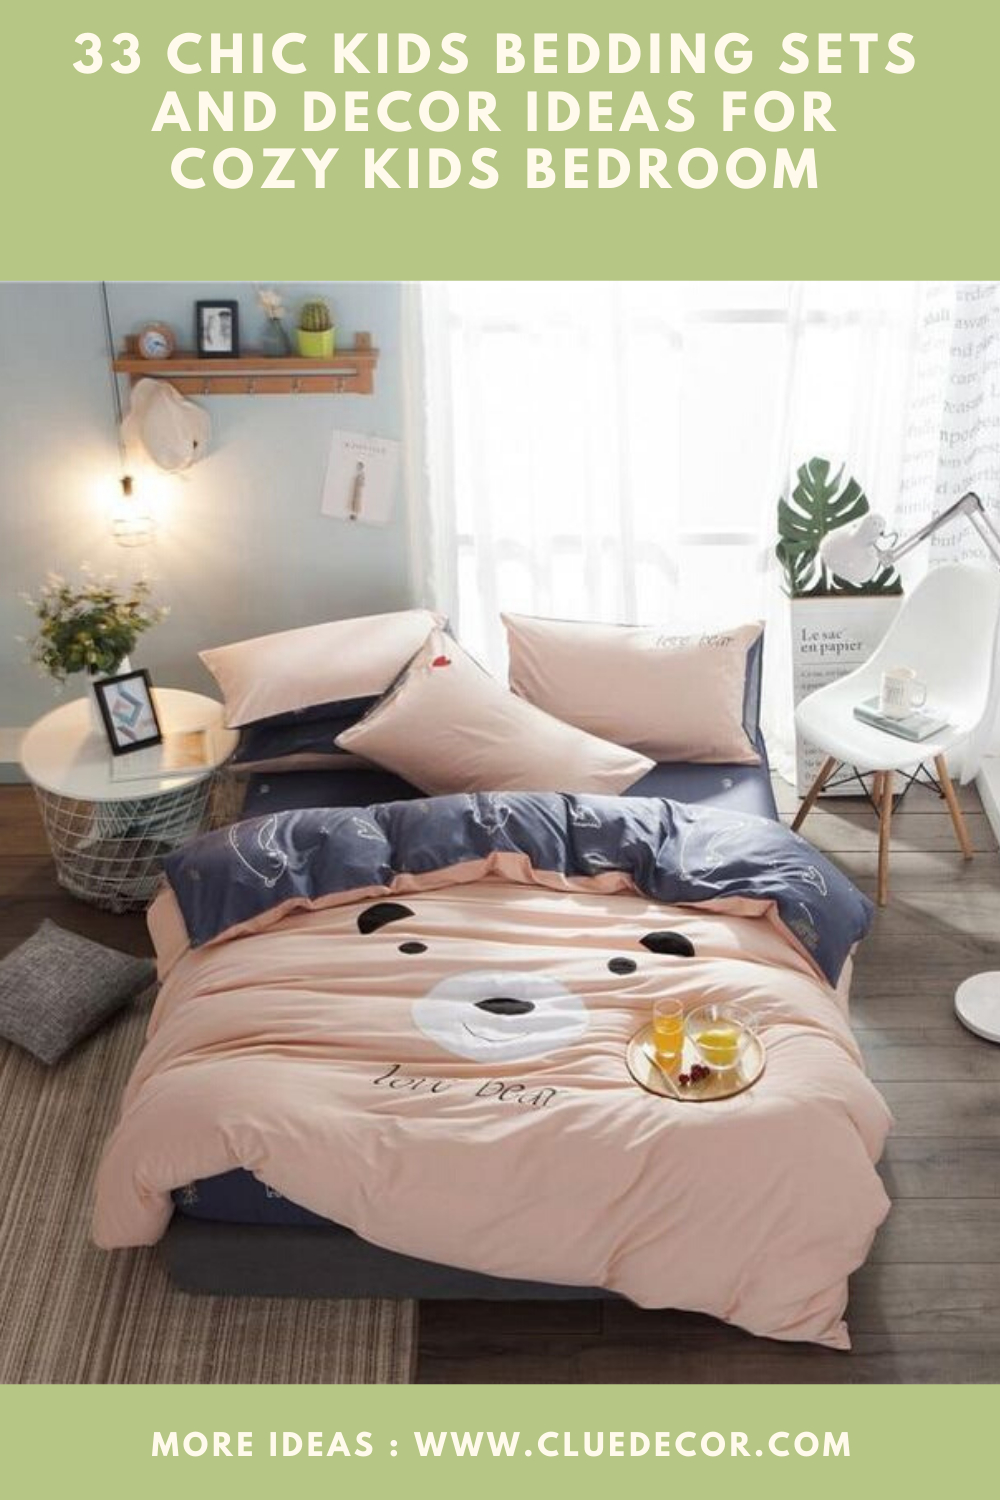 33 Chic Kids Bedding Sets And Decor Ideas For Cozy Kids Bedroom Cluedecor